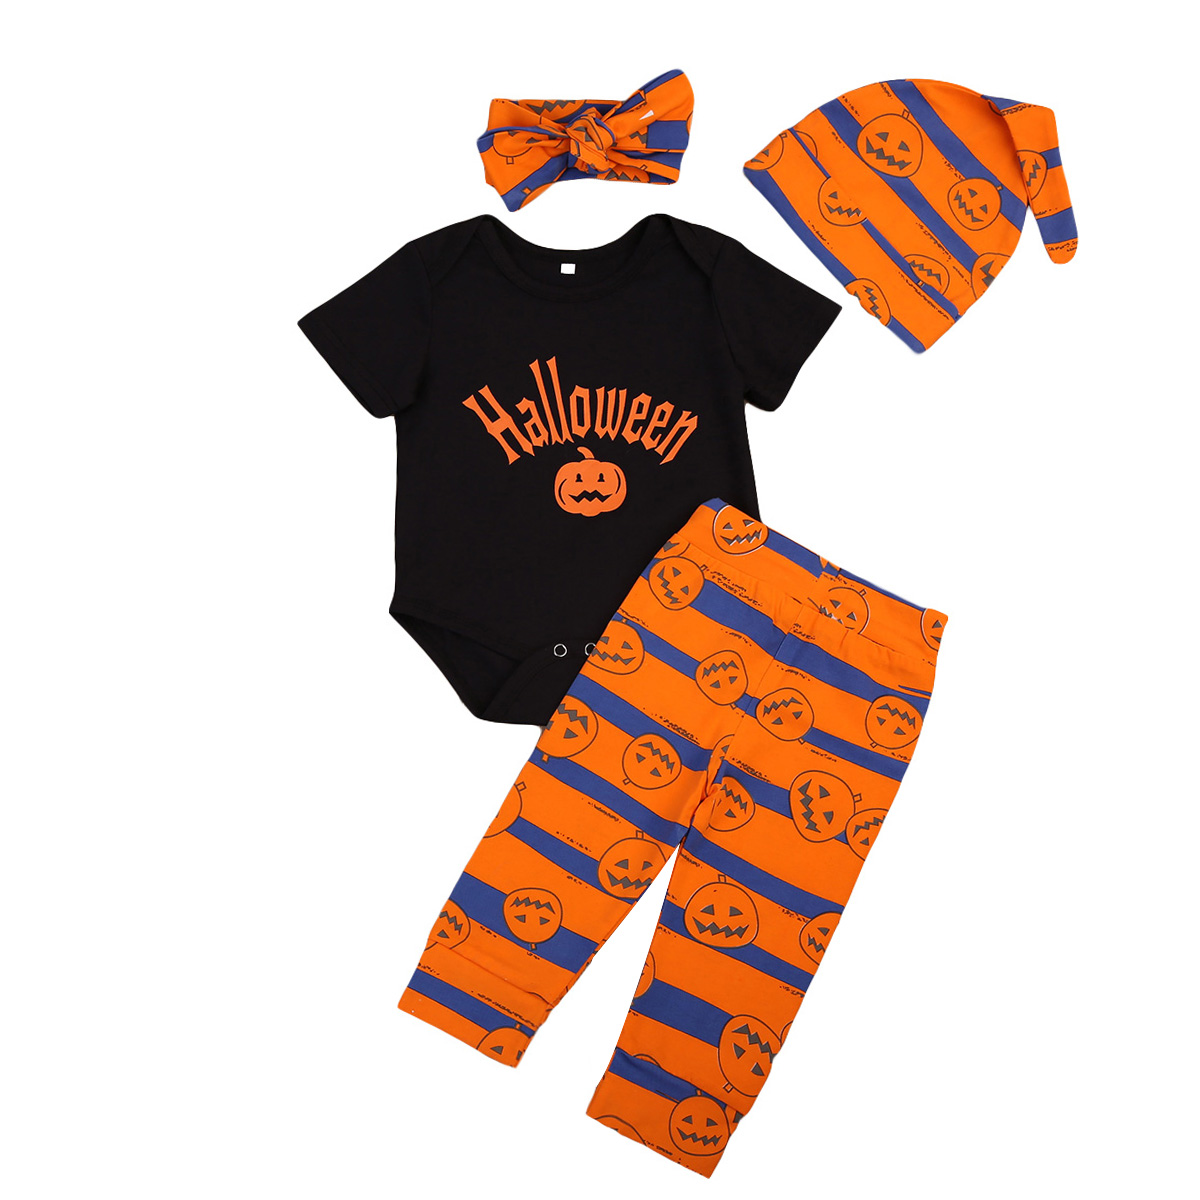 4pcs Per Set Halloween Newborn Baby Boy Girl Jumpsuit Romper Pants Outfits Costume 0-18M